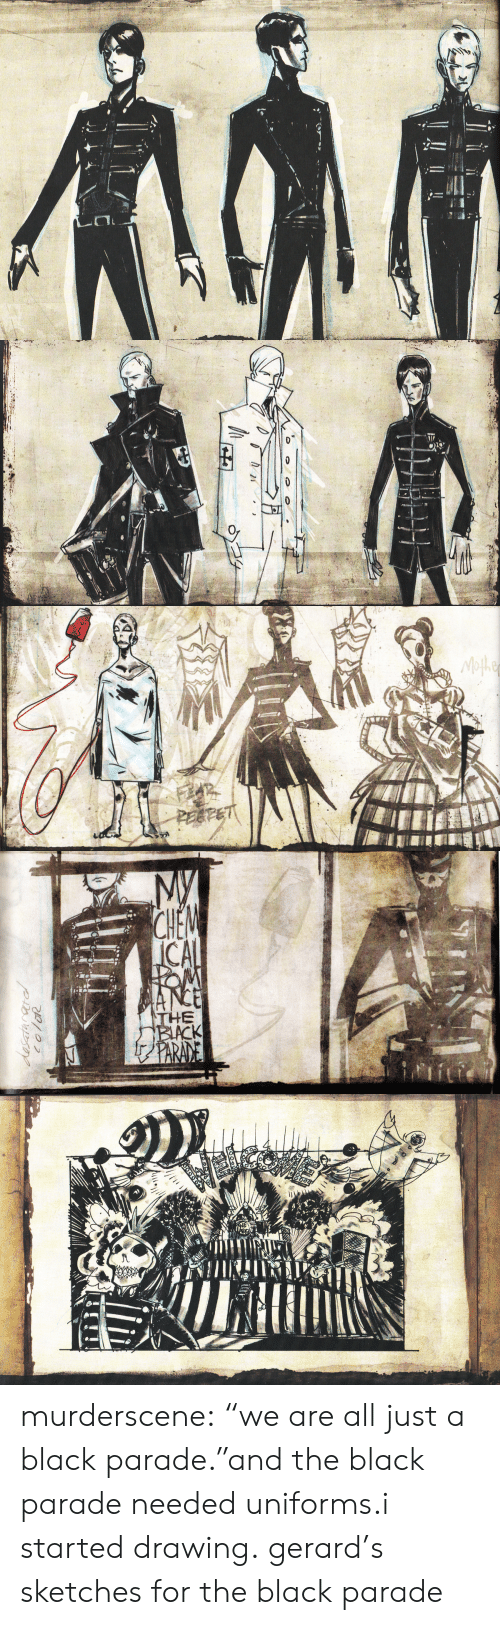 """Tumblr, Black, and Blog: Mofhe  PEEFET   My  CHEM  ICAL  OM  MANCE  THE  BIACK  fPARANE  desatarardl  coloR murderscene:  """"we are all just a black parade.""""and the black parade needed uniforms.i started drawing. gerard's sketches for the black parade"""